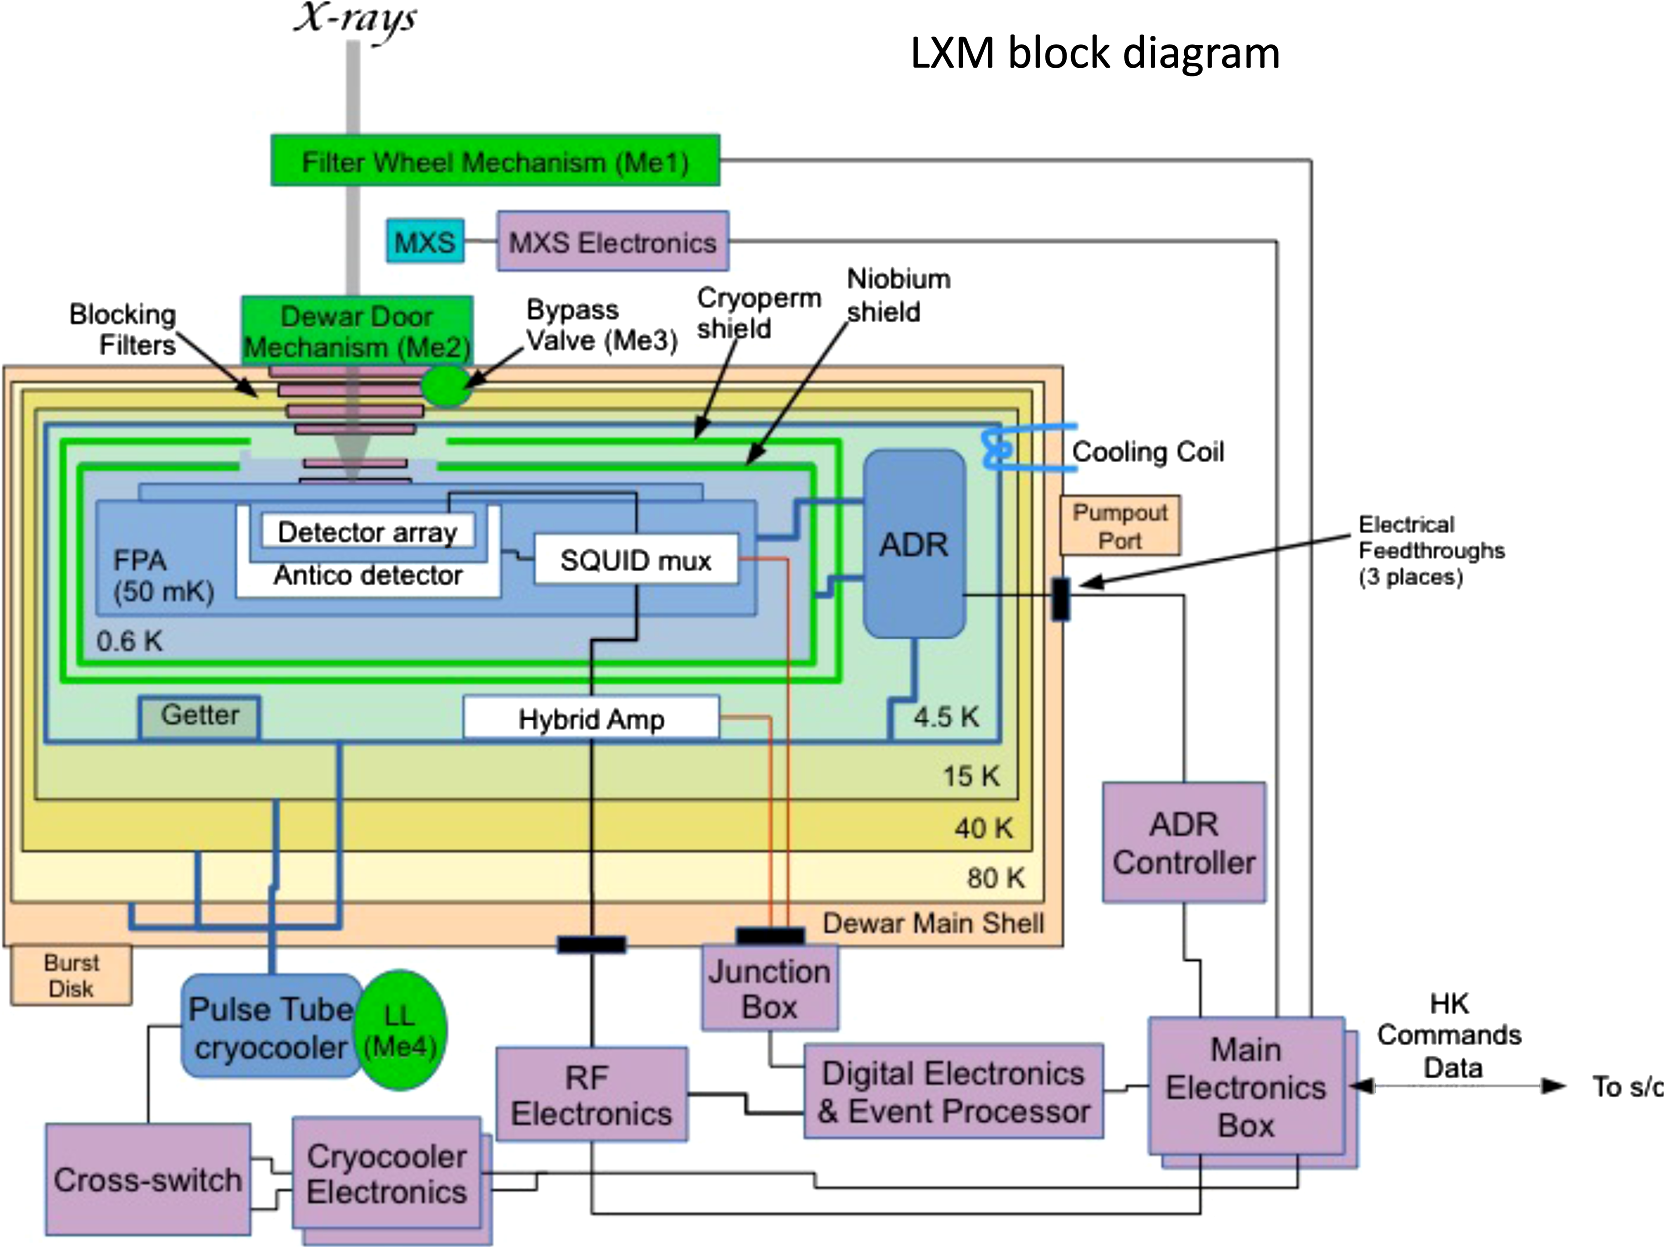 block diagram of the lxm  the cryocooler and meb consist of two redundant  boxes  the deep box is actually two separate segmented boxes